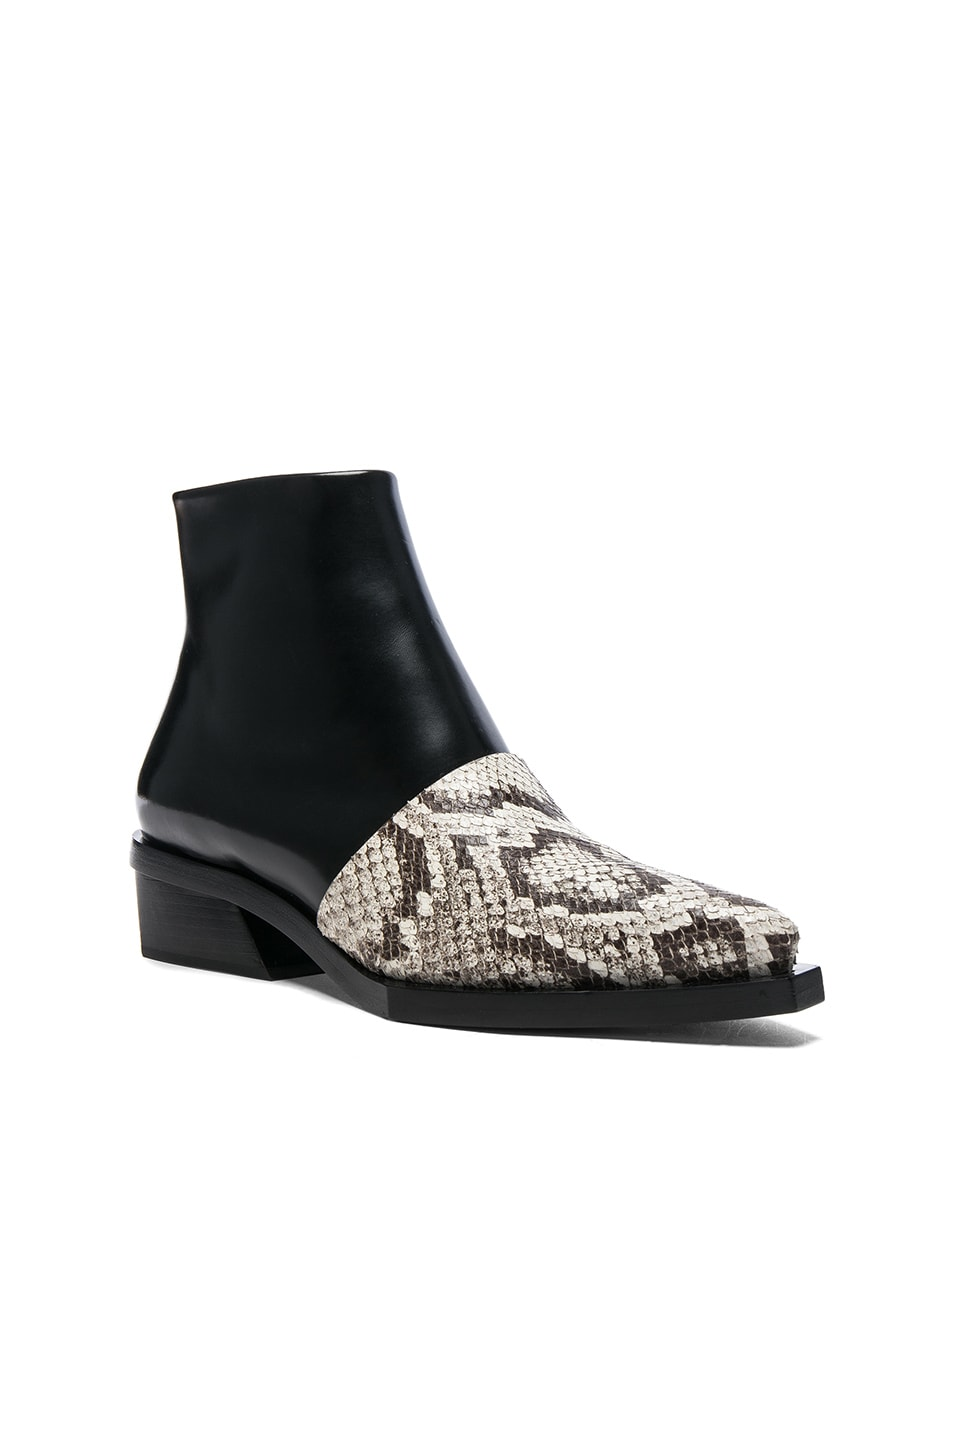 Image 2 of Proenza Schouler Leather & Snakeskin Ankle Boots in Black & Natural